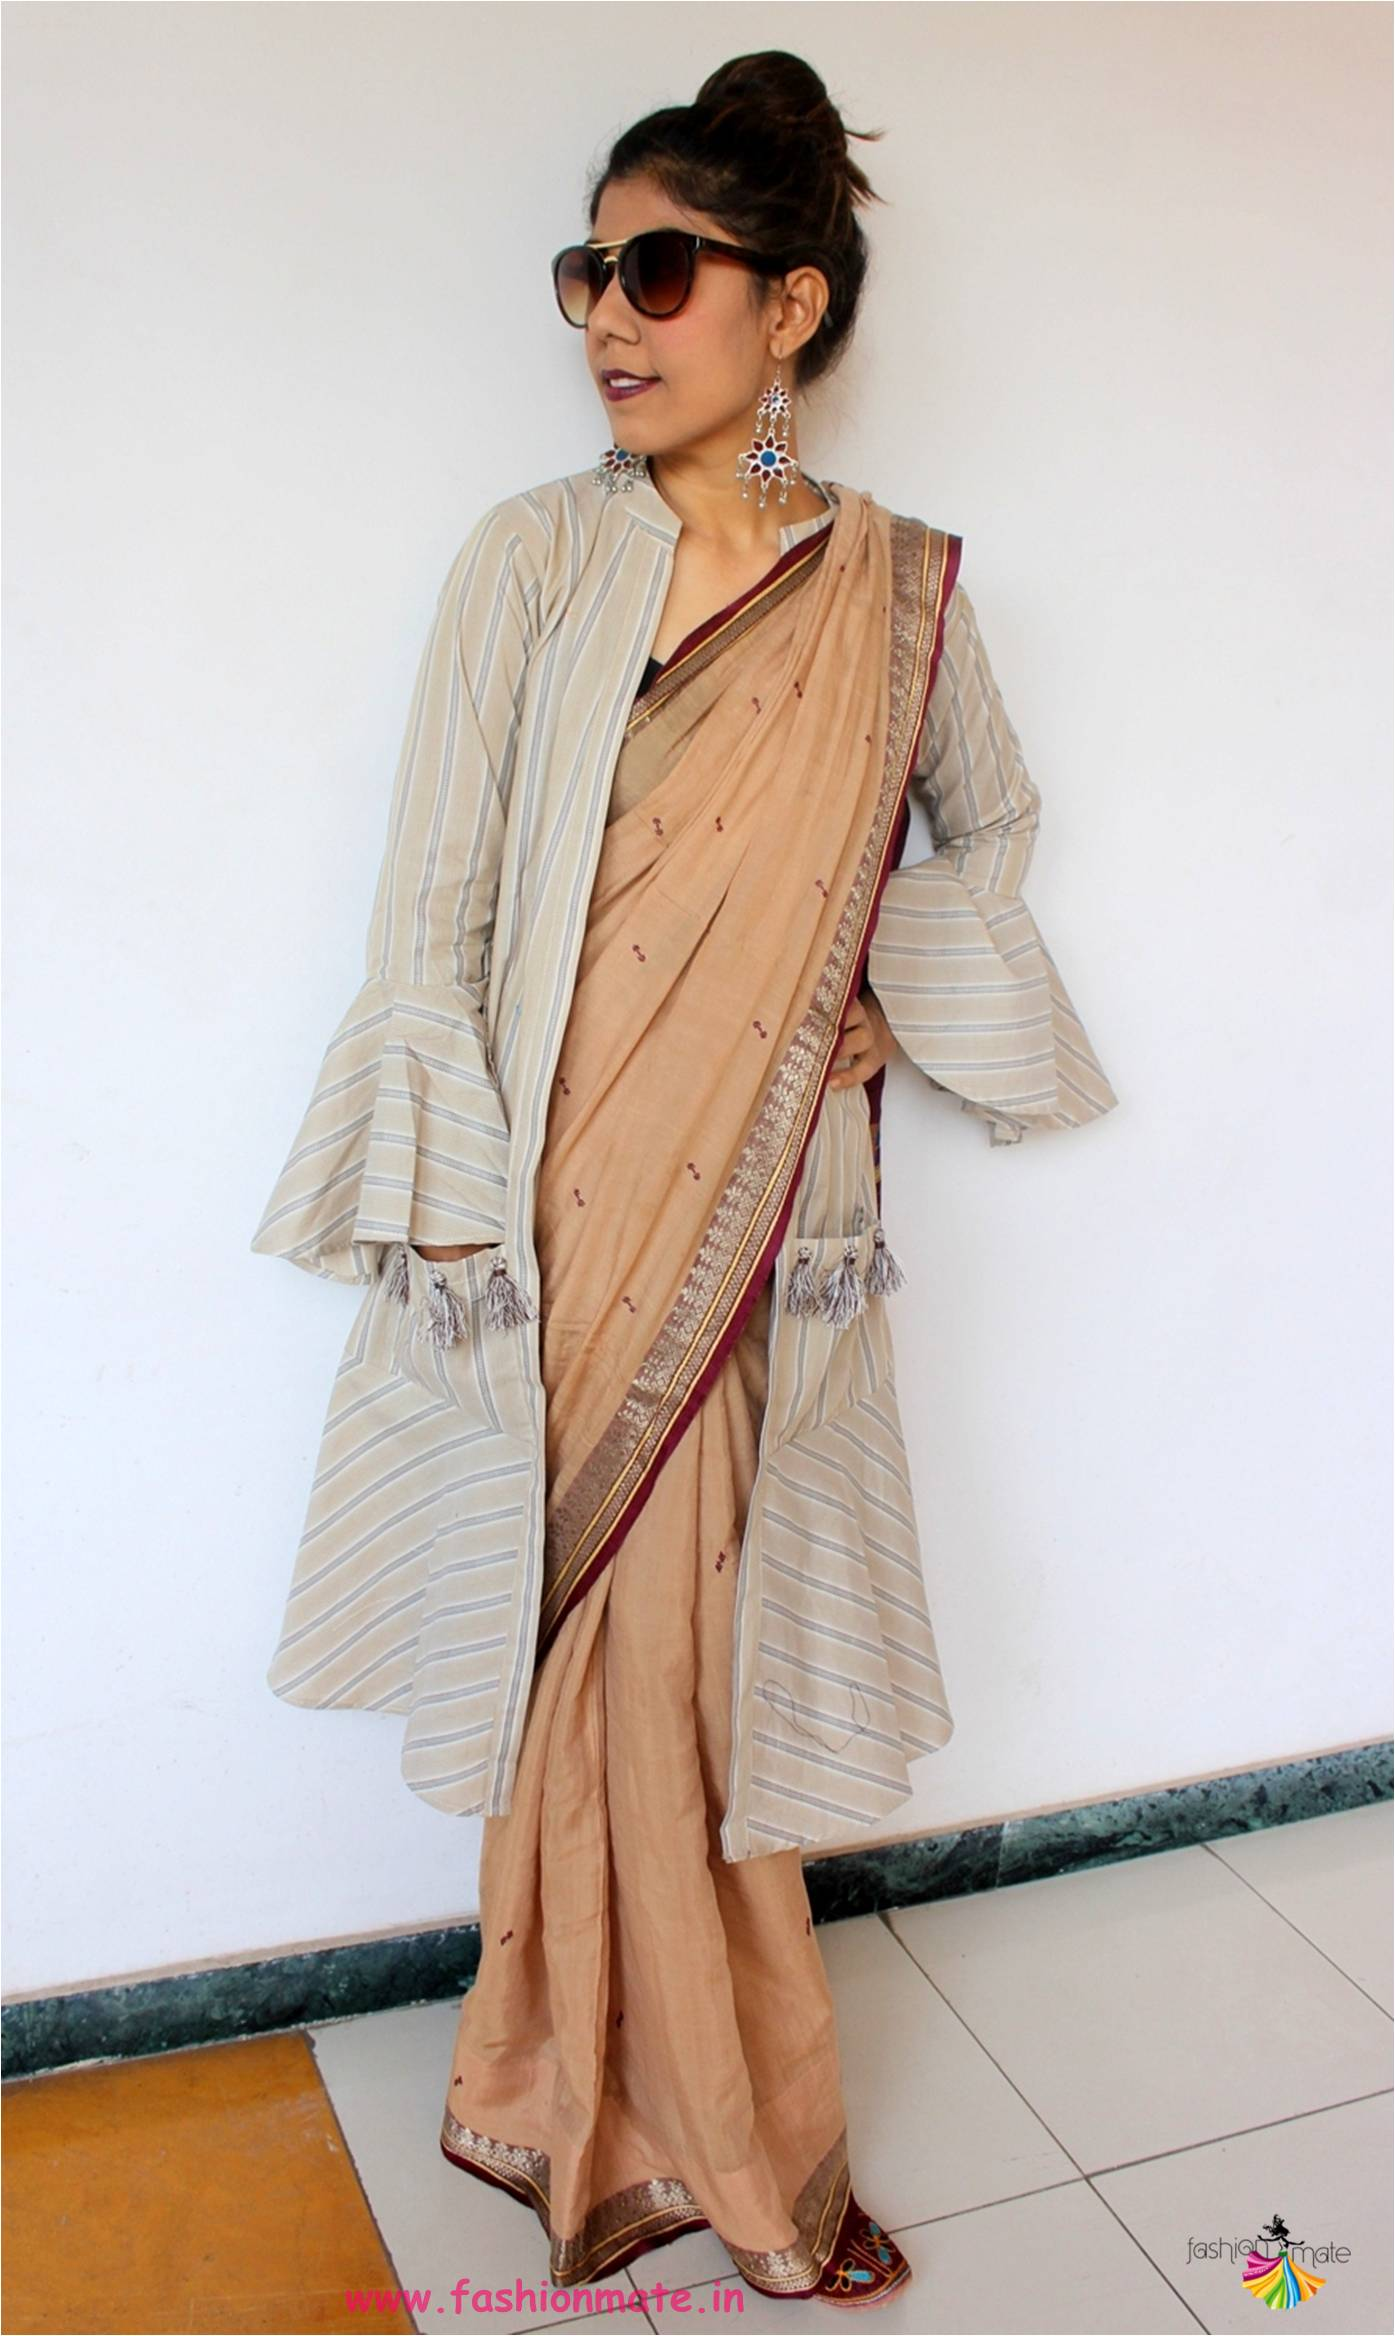 Jacket Saree Trend – How to style cotton saree with a Jacket